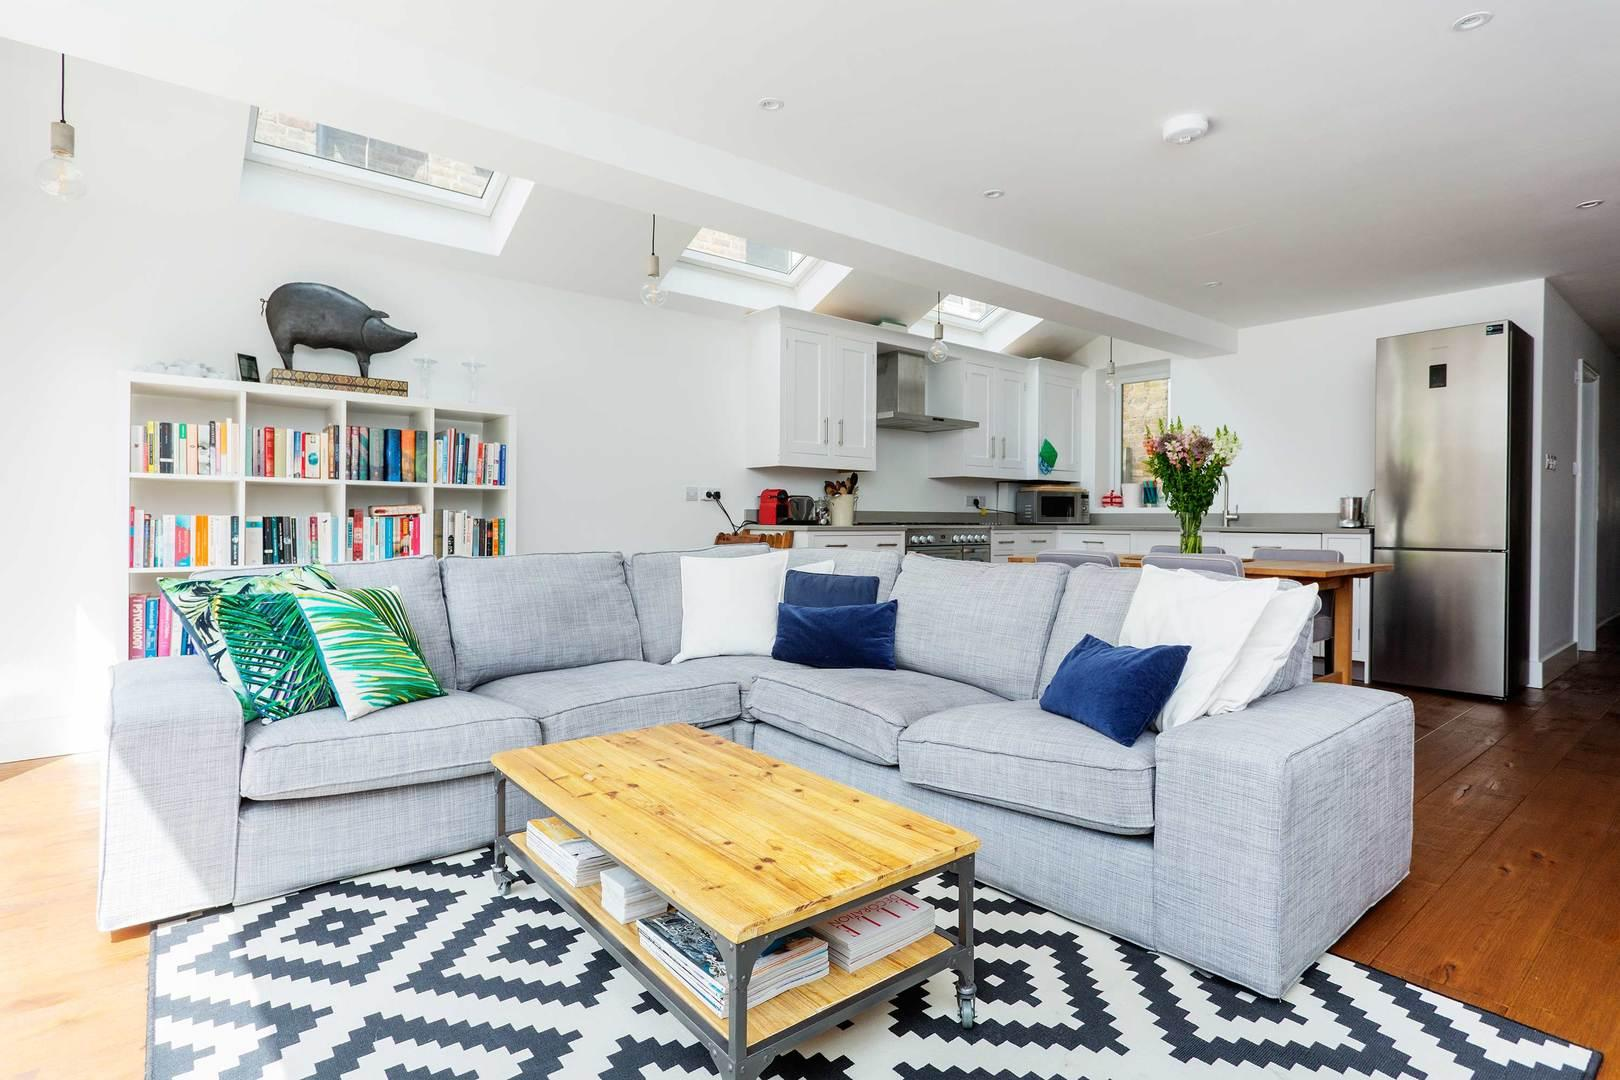 Property Image 1 - Handsome Shepherd's Bush Apartment with Patio Garden